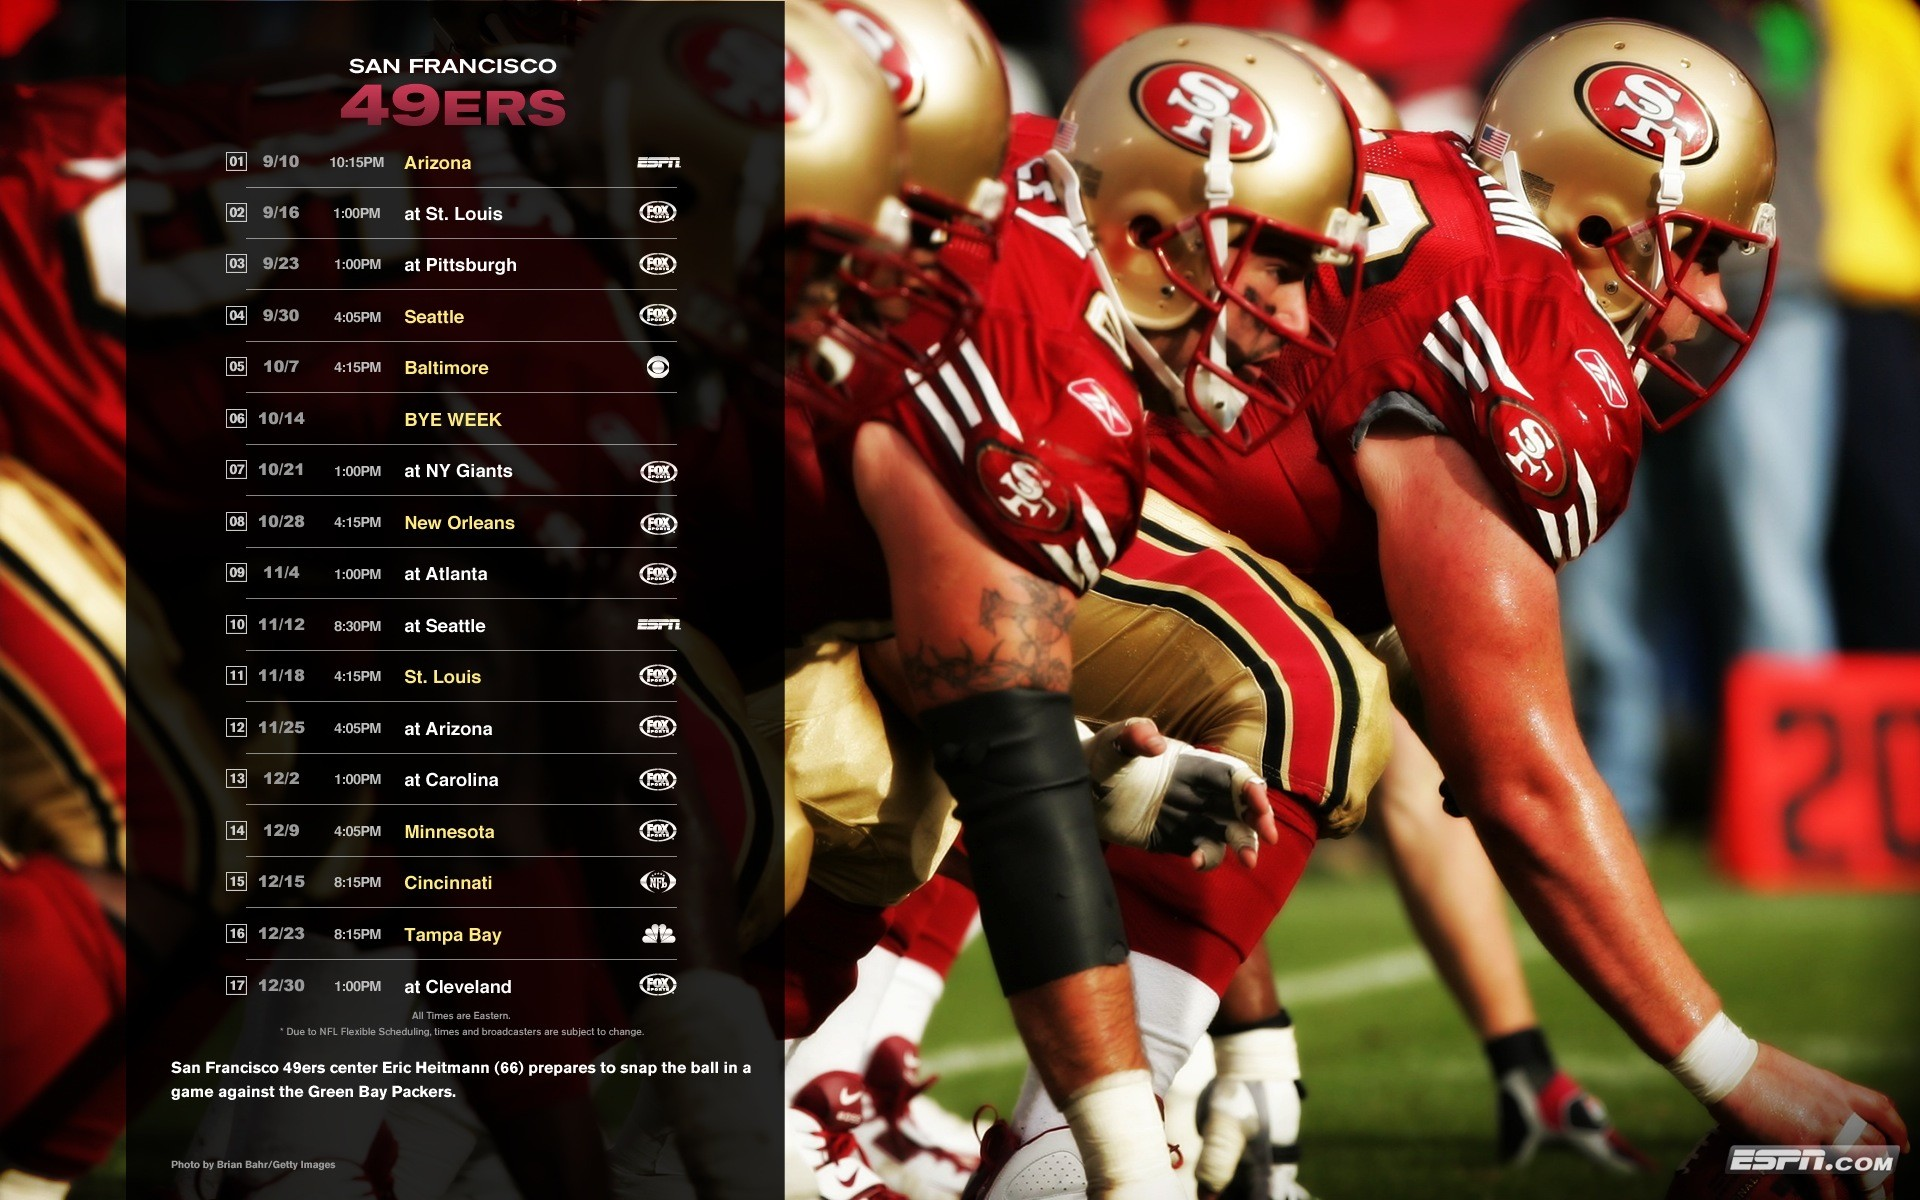 Niners nation wallpaper labzada wallpaper niners nation wallpaper source 49ers wallpaper wednesday 67 images voltagebd Image collections